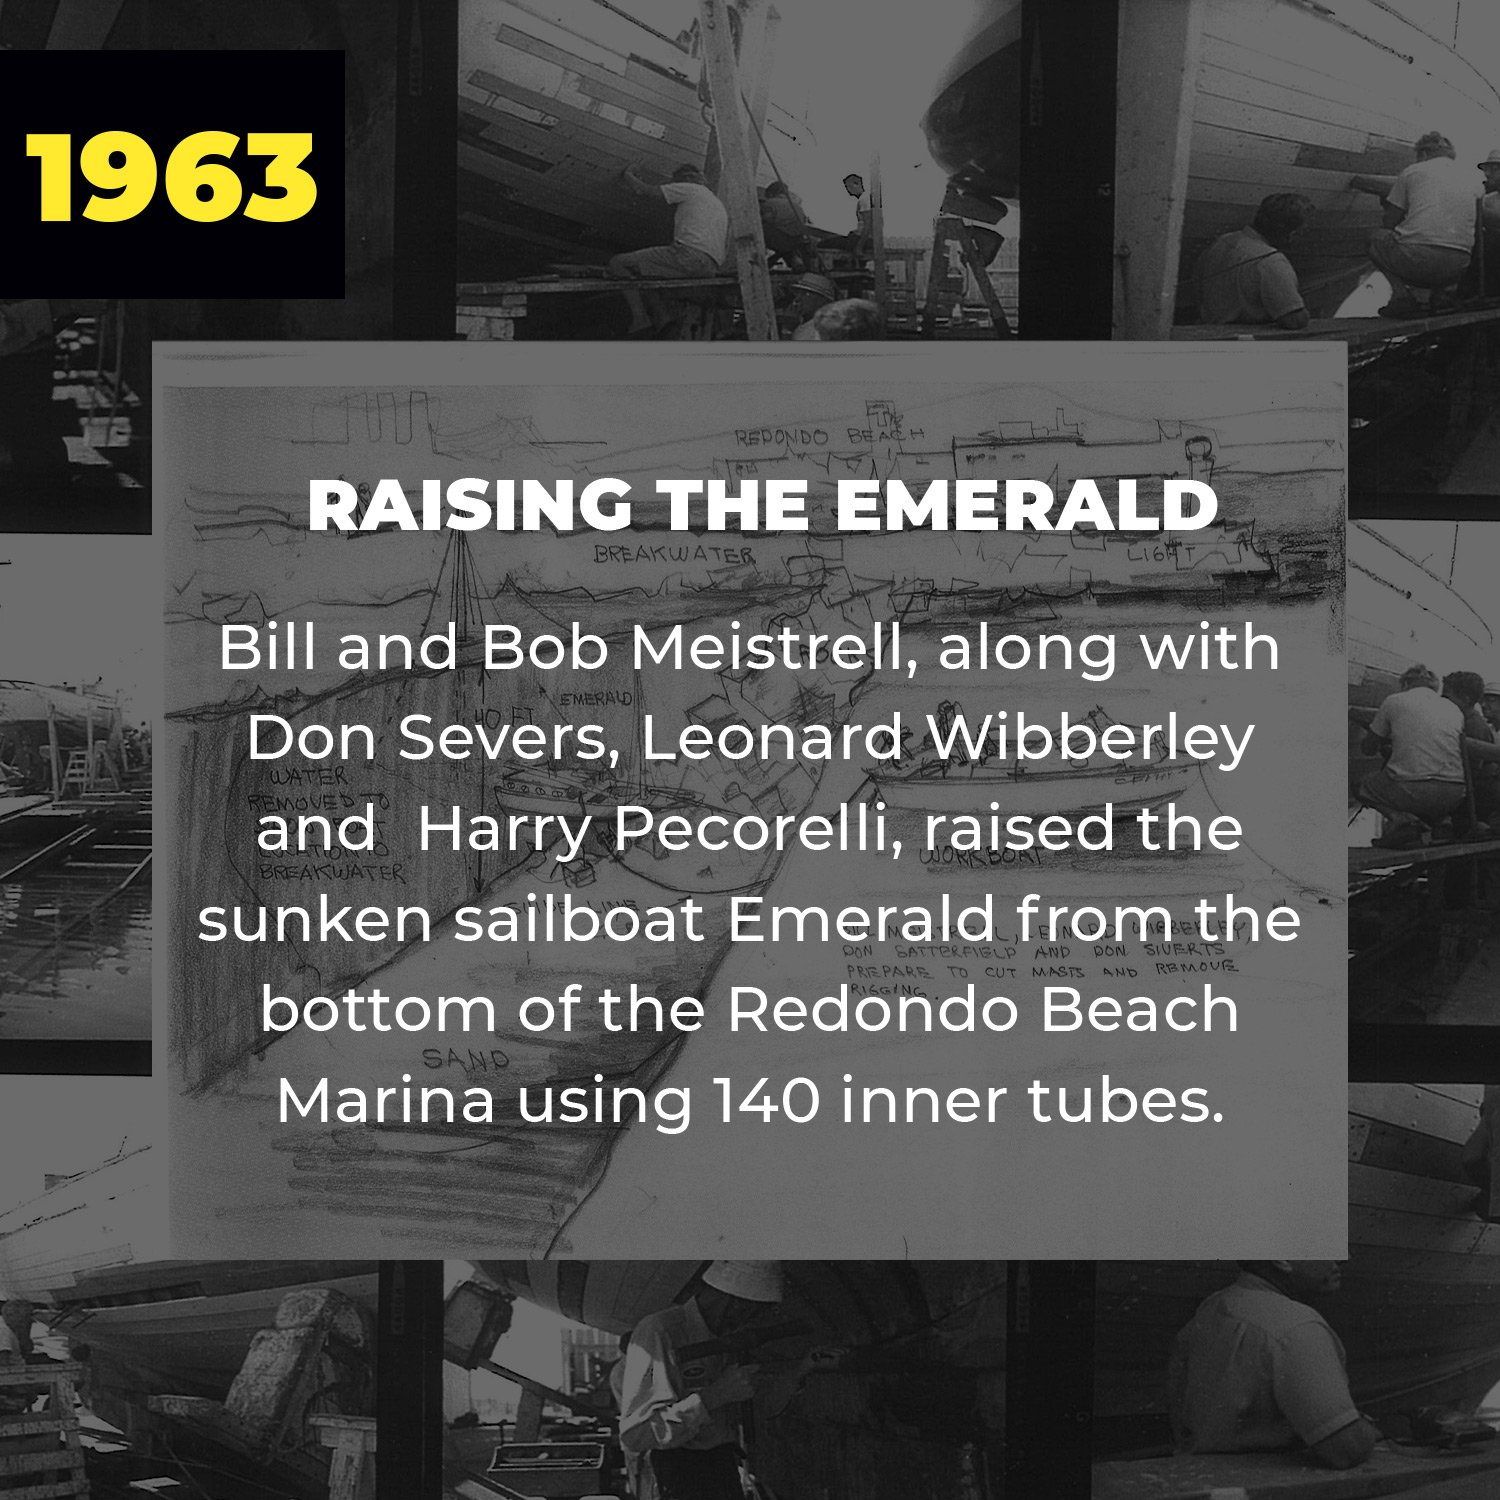 1963 | Raising the Emerald | Bill and Bob Meistrell, along with Don Severs, Leonard Wibberley and Harry Pecorelli, raised the sunken sailboat Emerald from the bottom of the Redondo Beach Marina using 140 inner tubes.